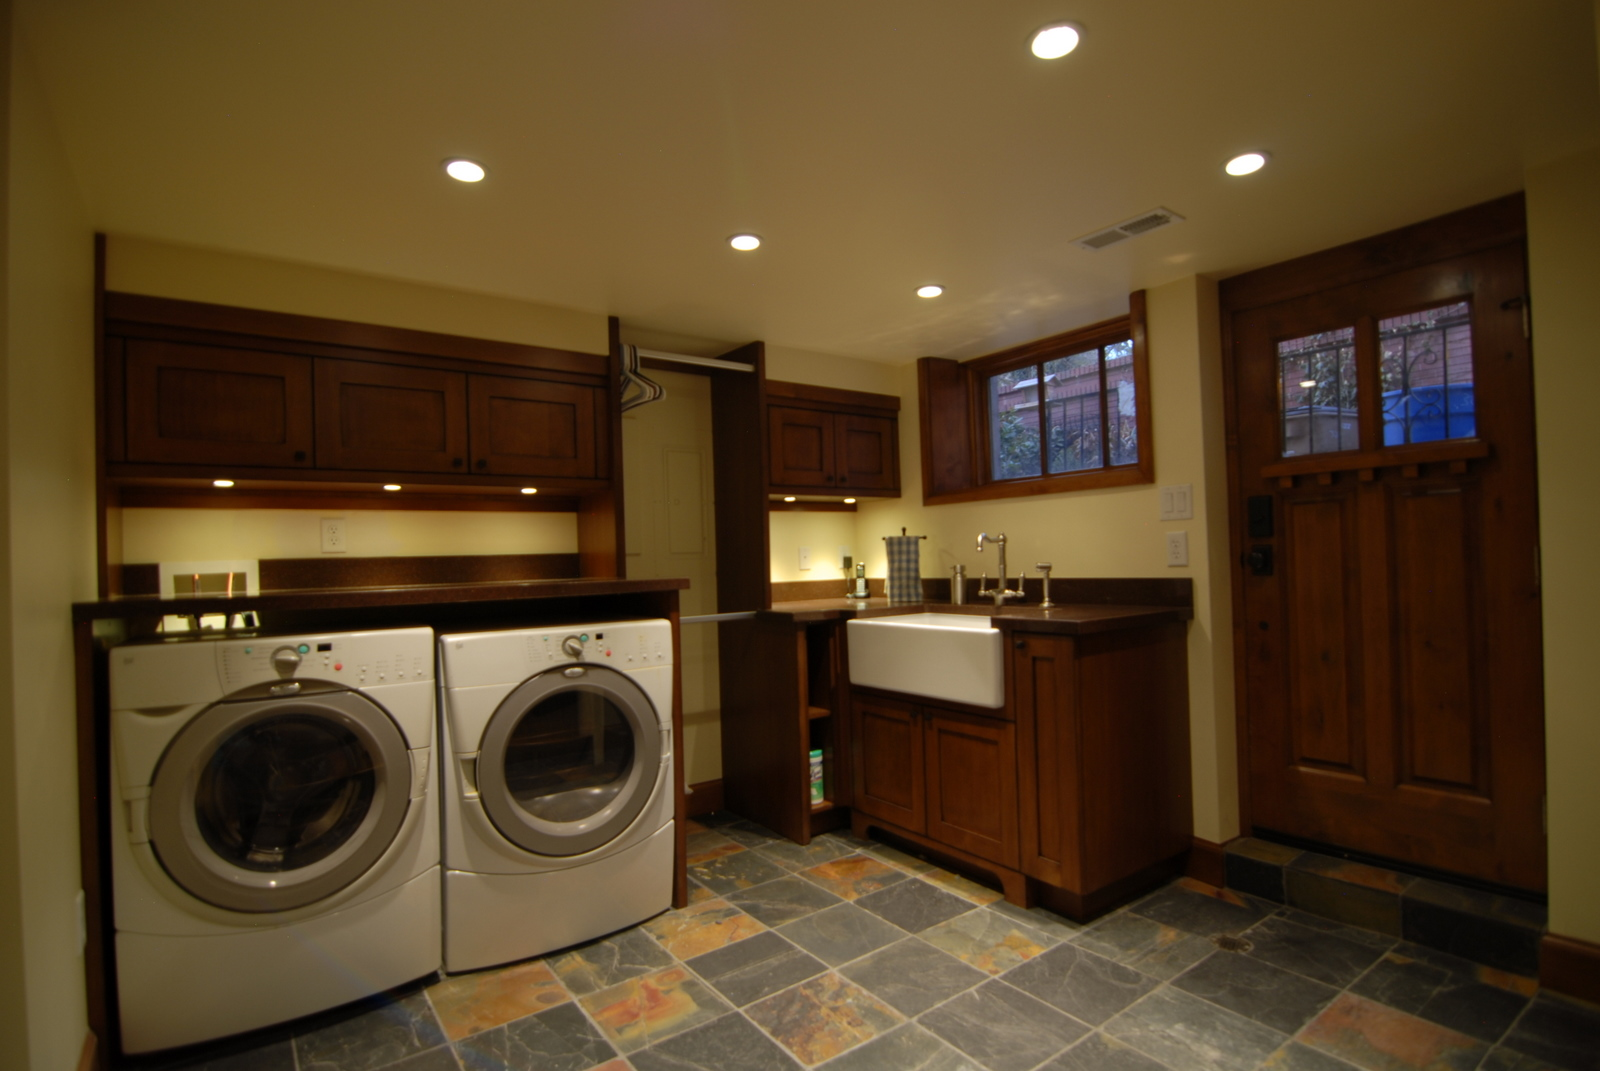 Enzy living laundry room basement in a craftsman home - Laundry room layout ideas ...